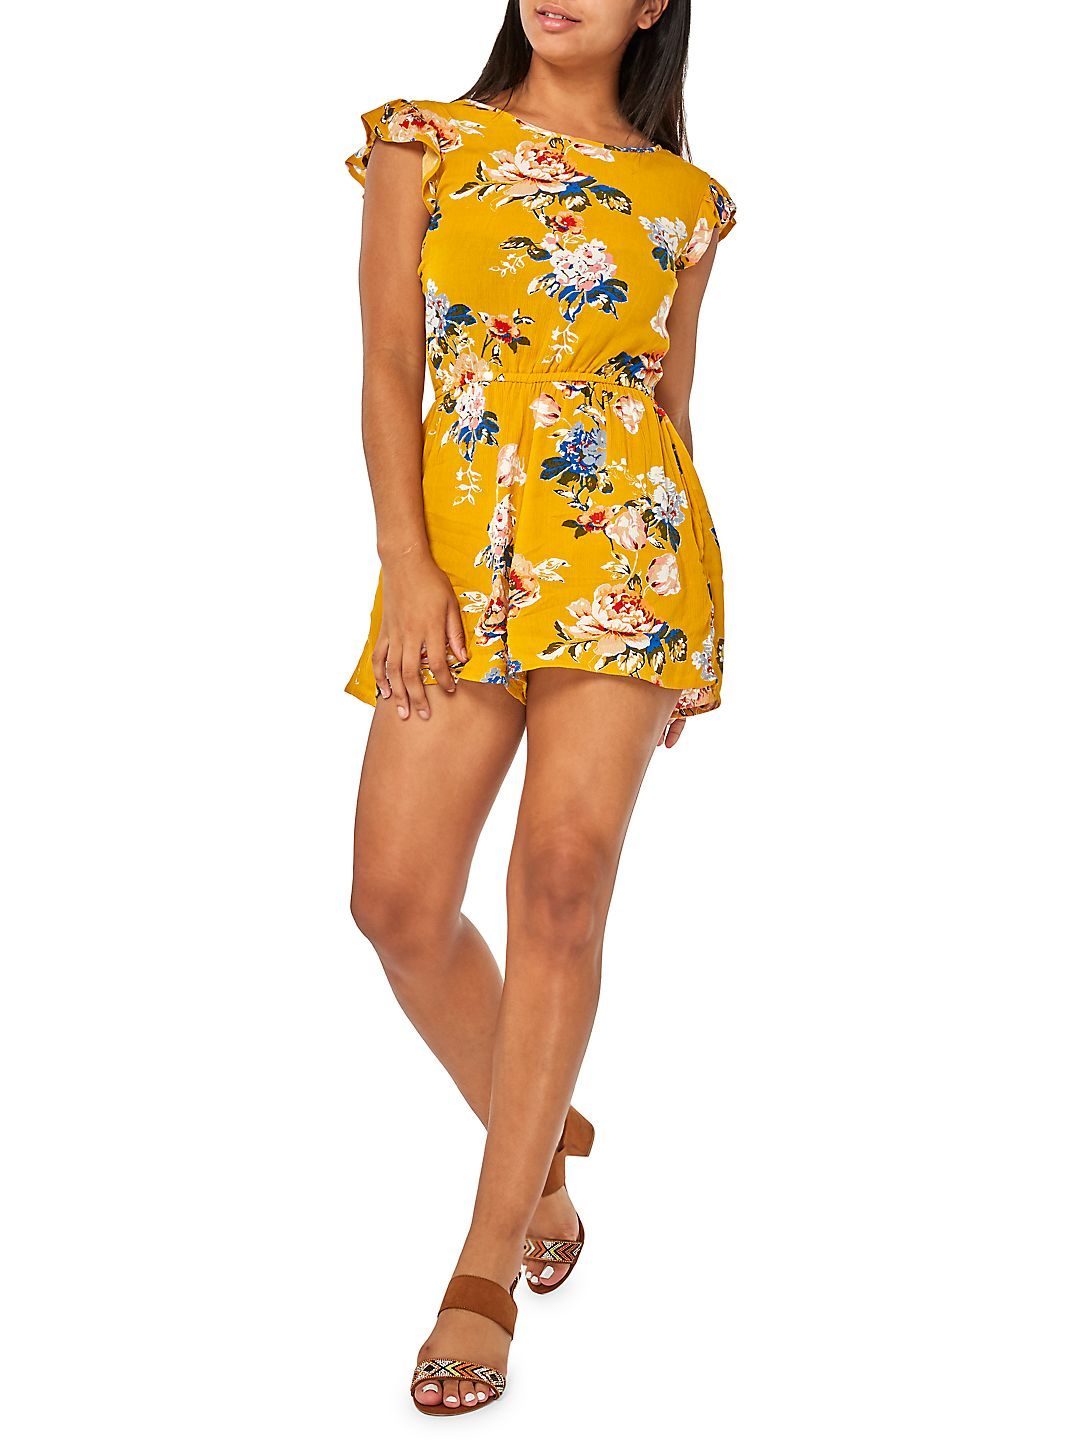 Ruffle Floral Playsuit